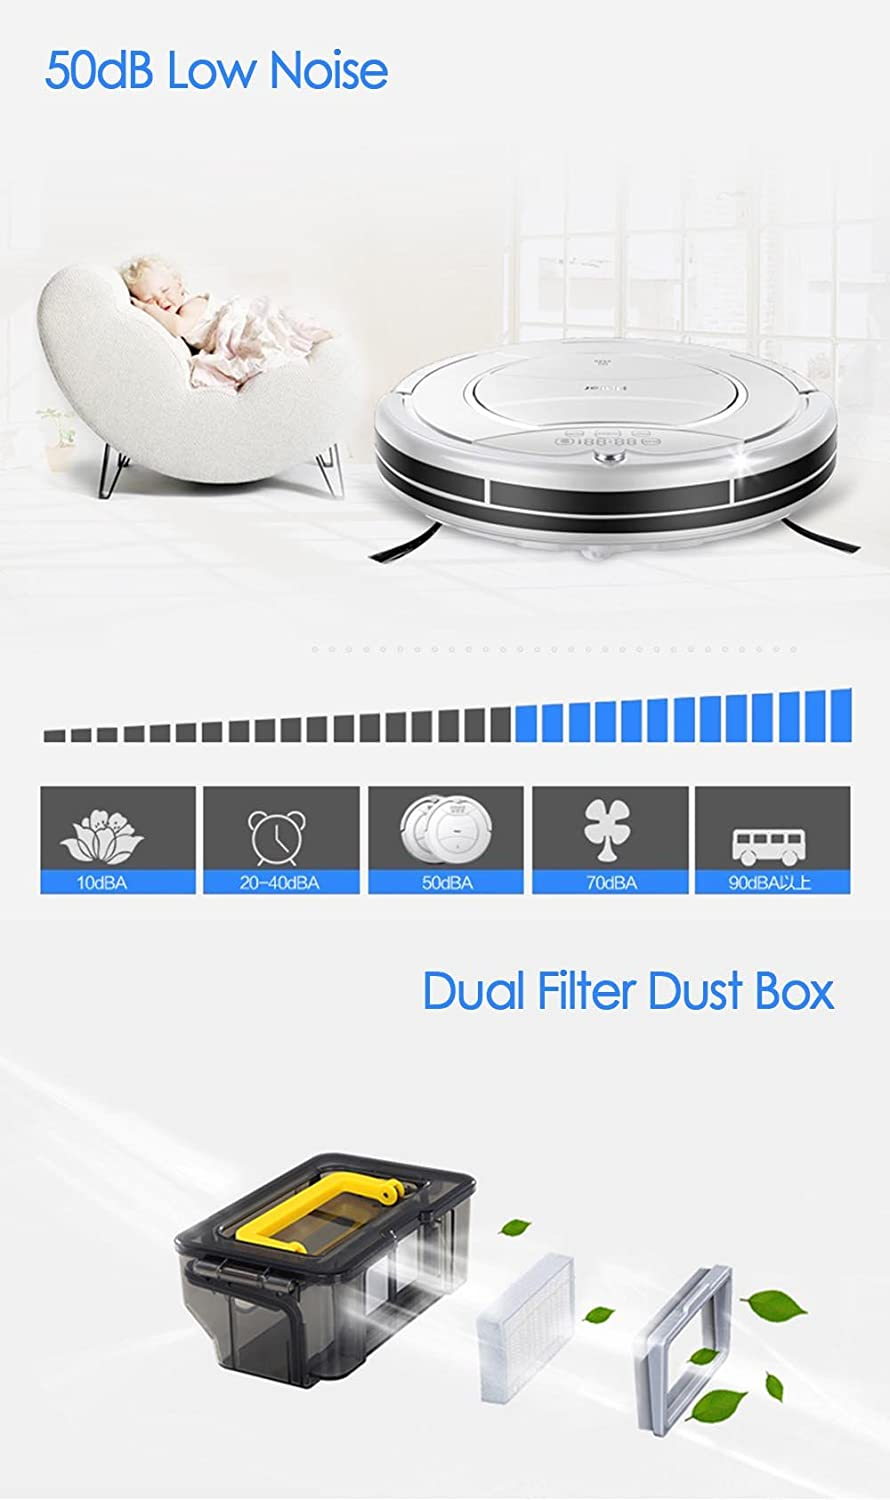 haier vacuum robot. amazon.com: haier swr-t321 pathfinder vacuum cleaner robot remote control self charging cleaning devices (us plug, gold): home \u0026 kitchen a